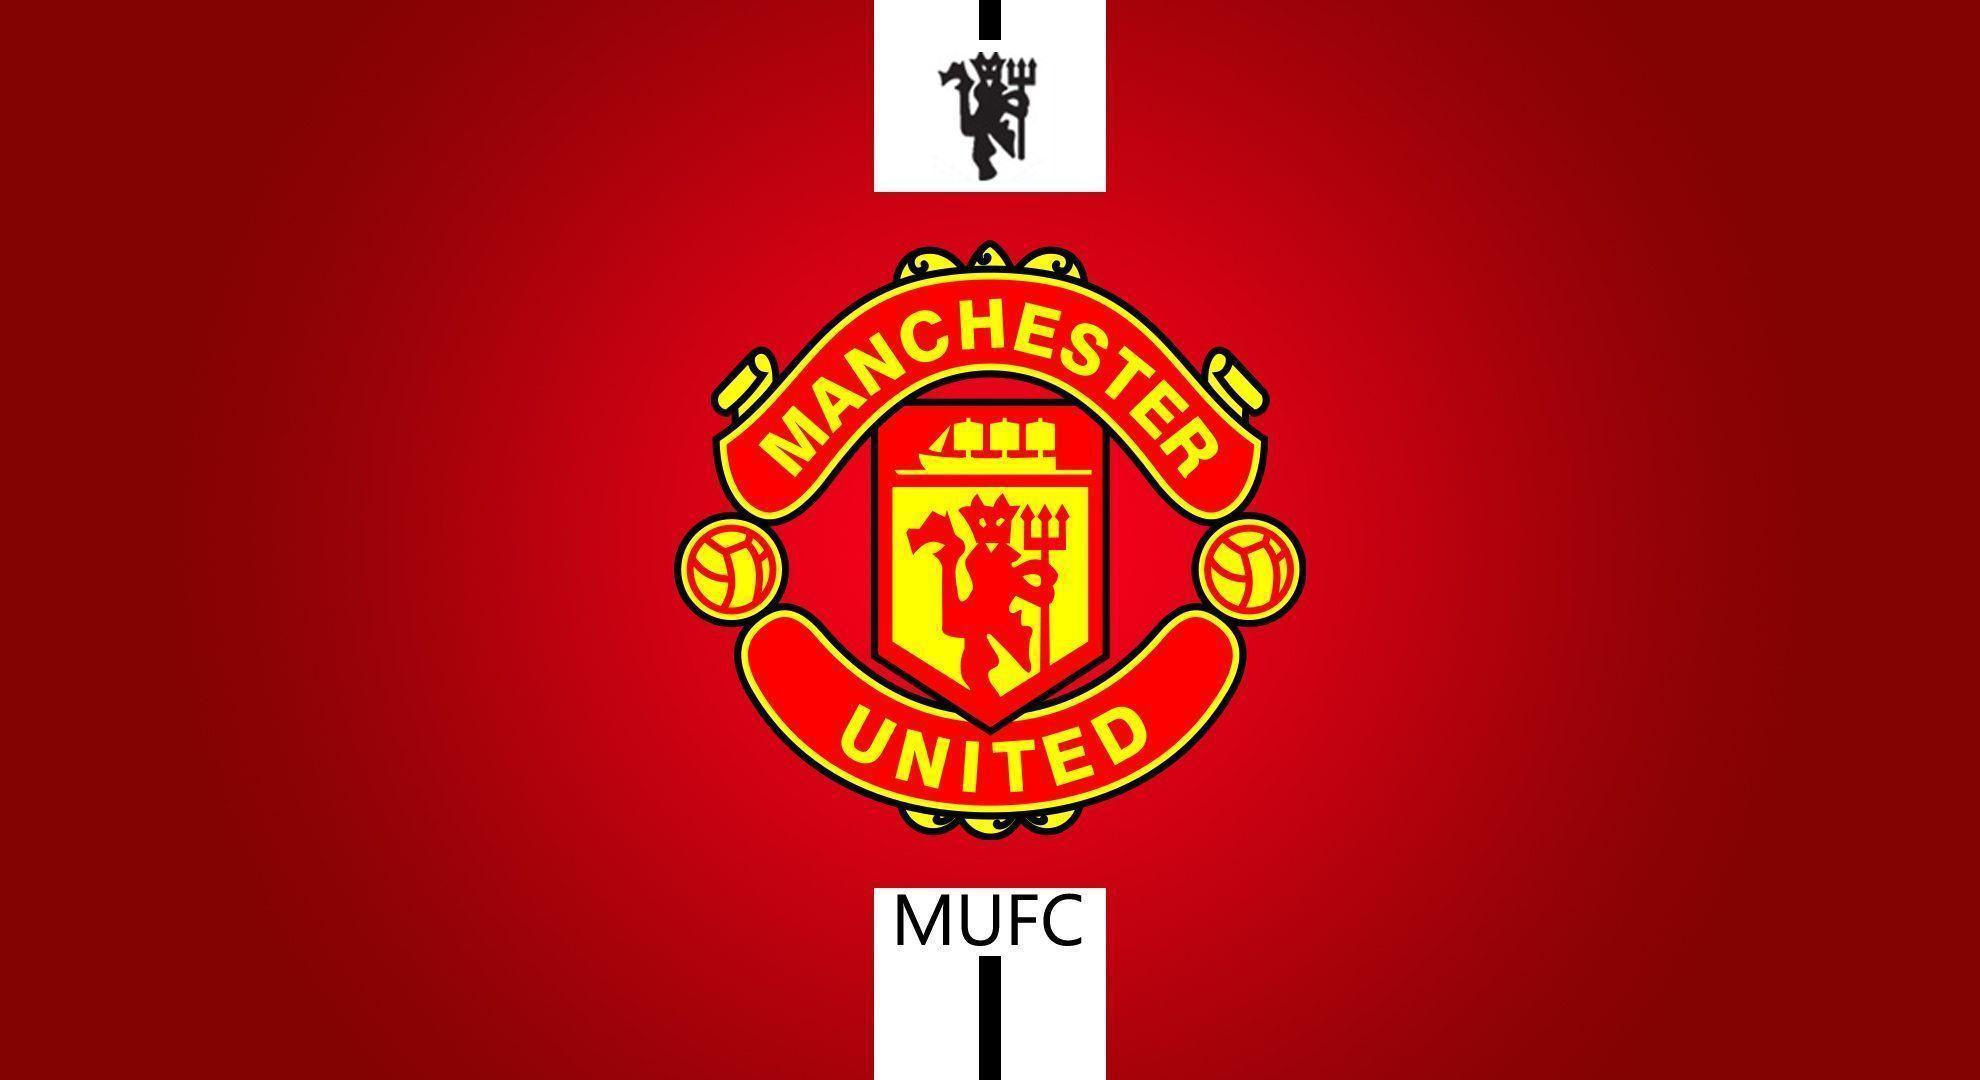 Man United Wallpapers 2017 - Wallpaper Cave